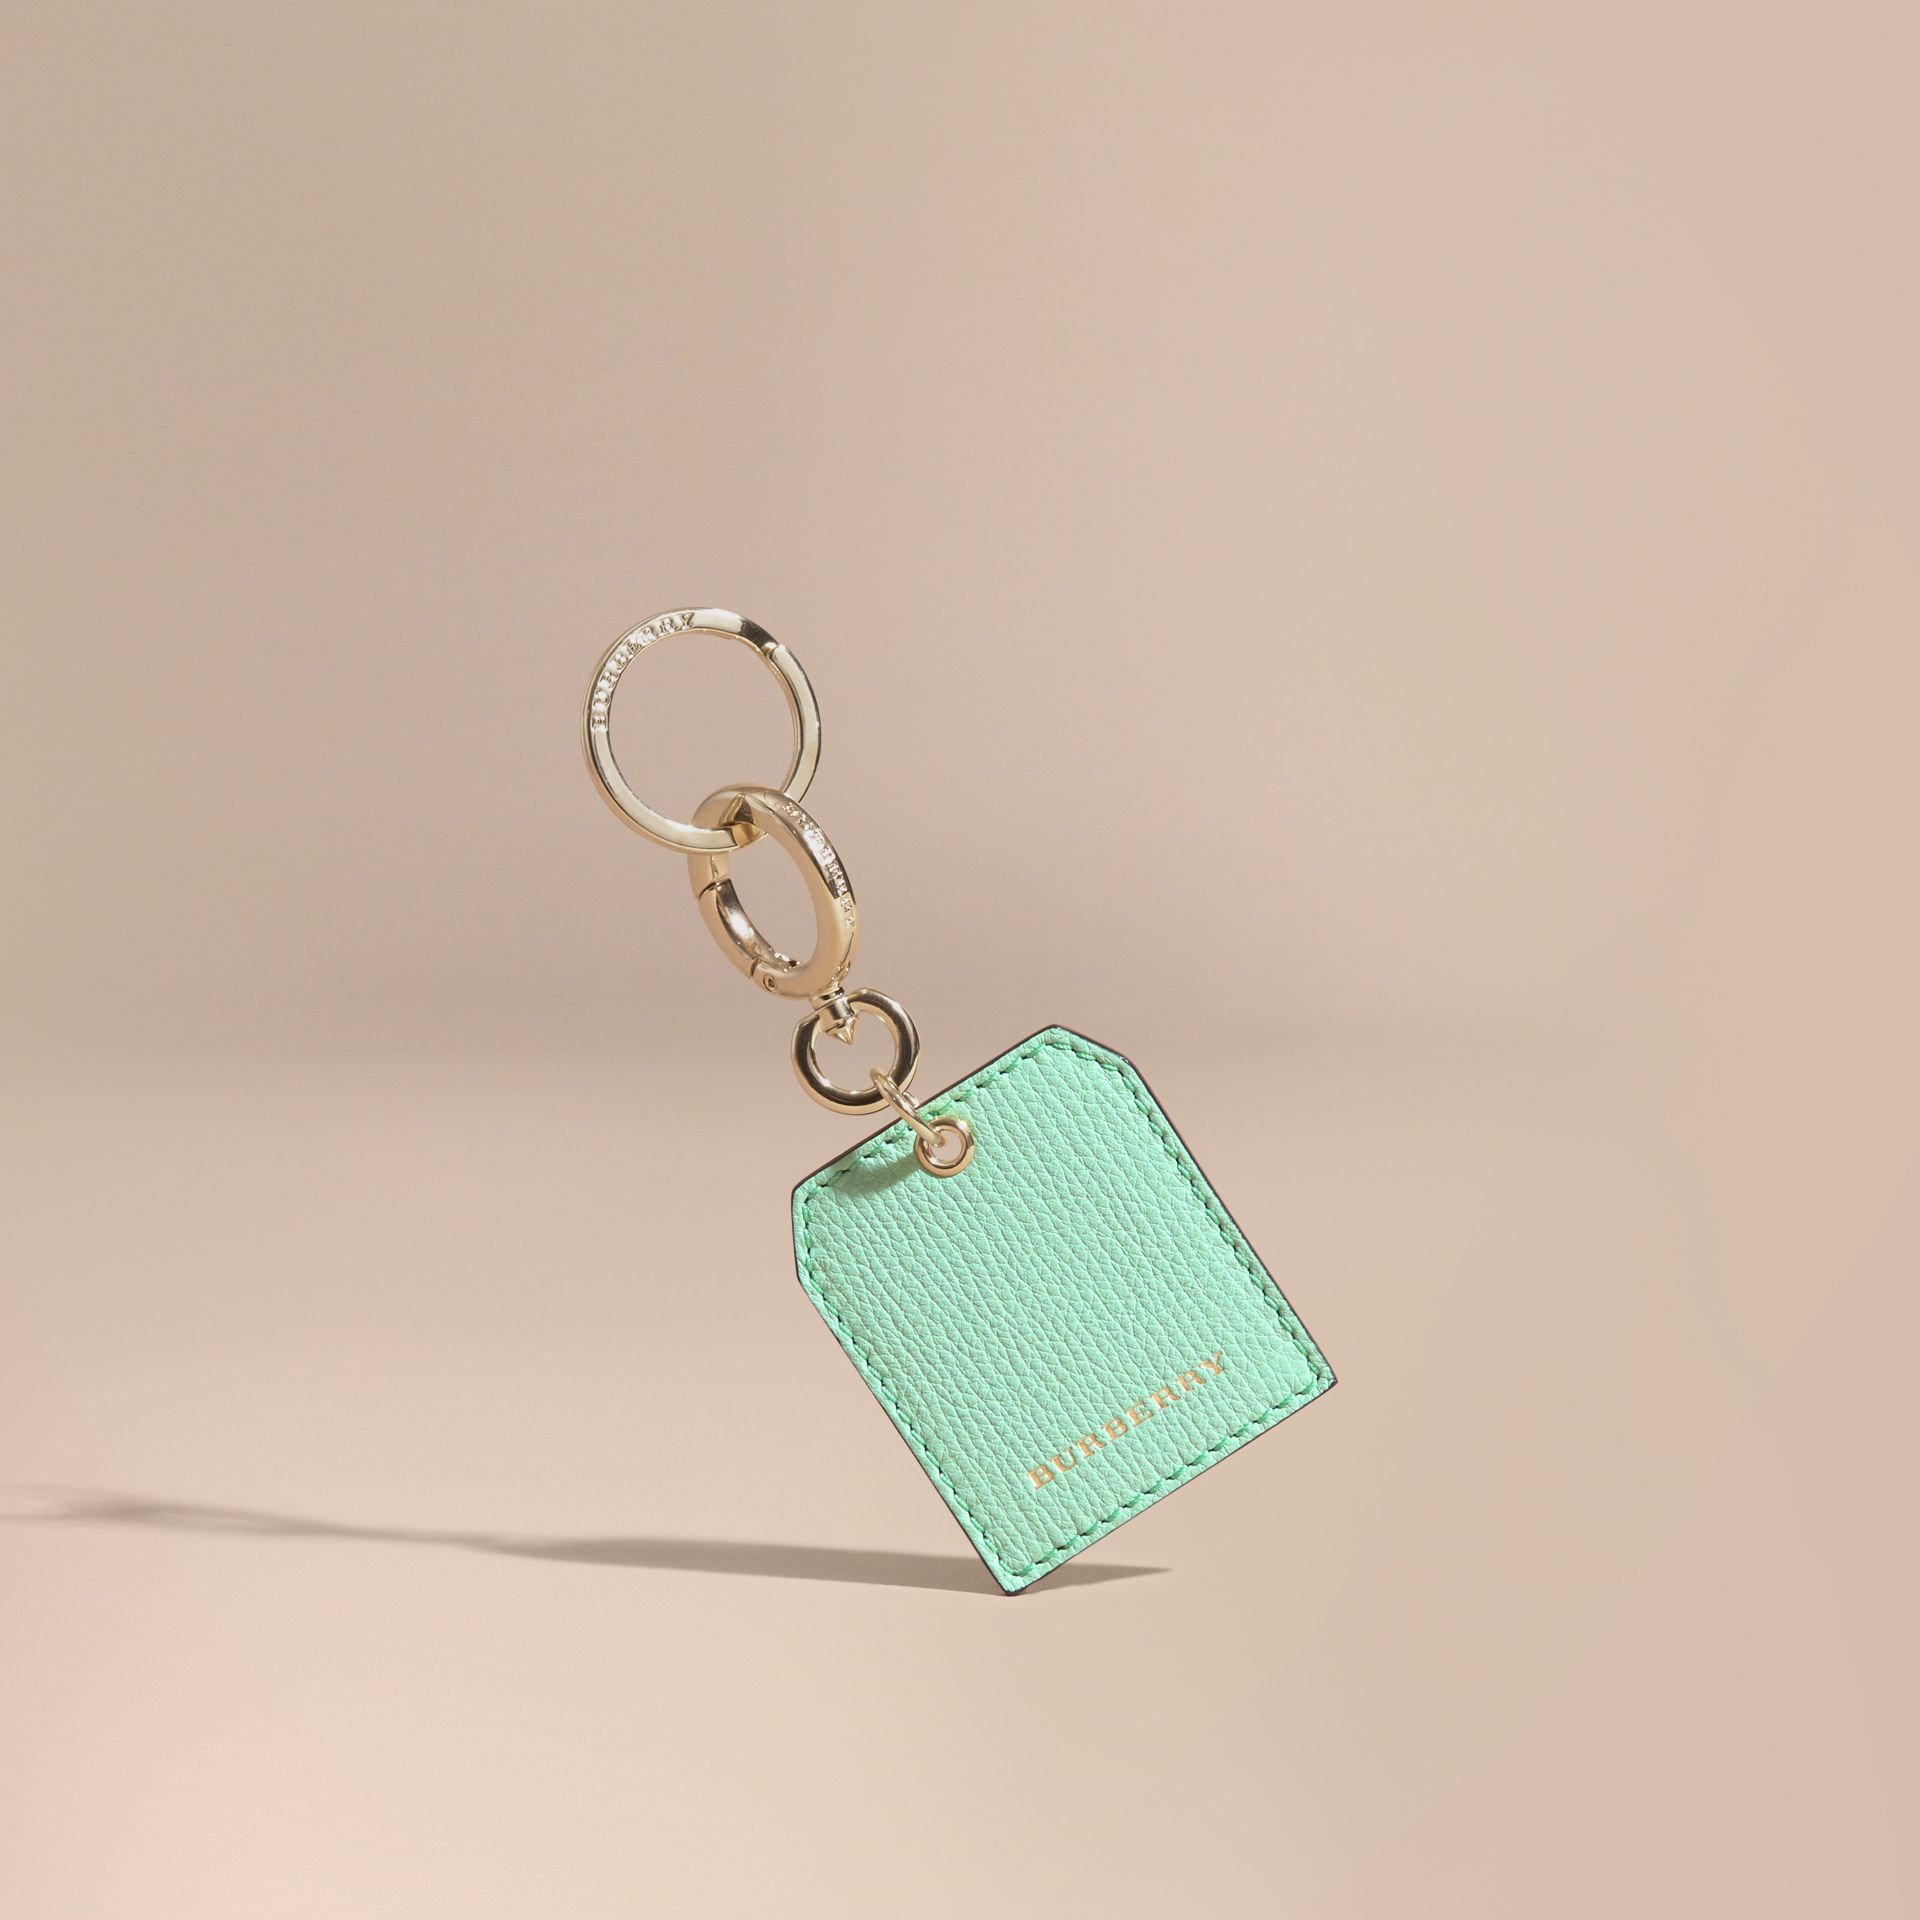 Grainy Leather Key Charm in Light Mint - Women | Burberry - gallery image 1